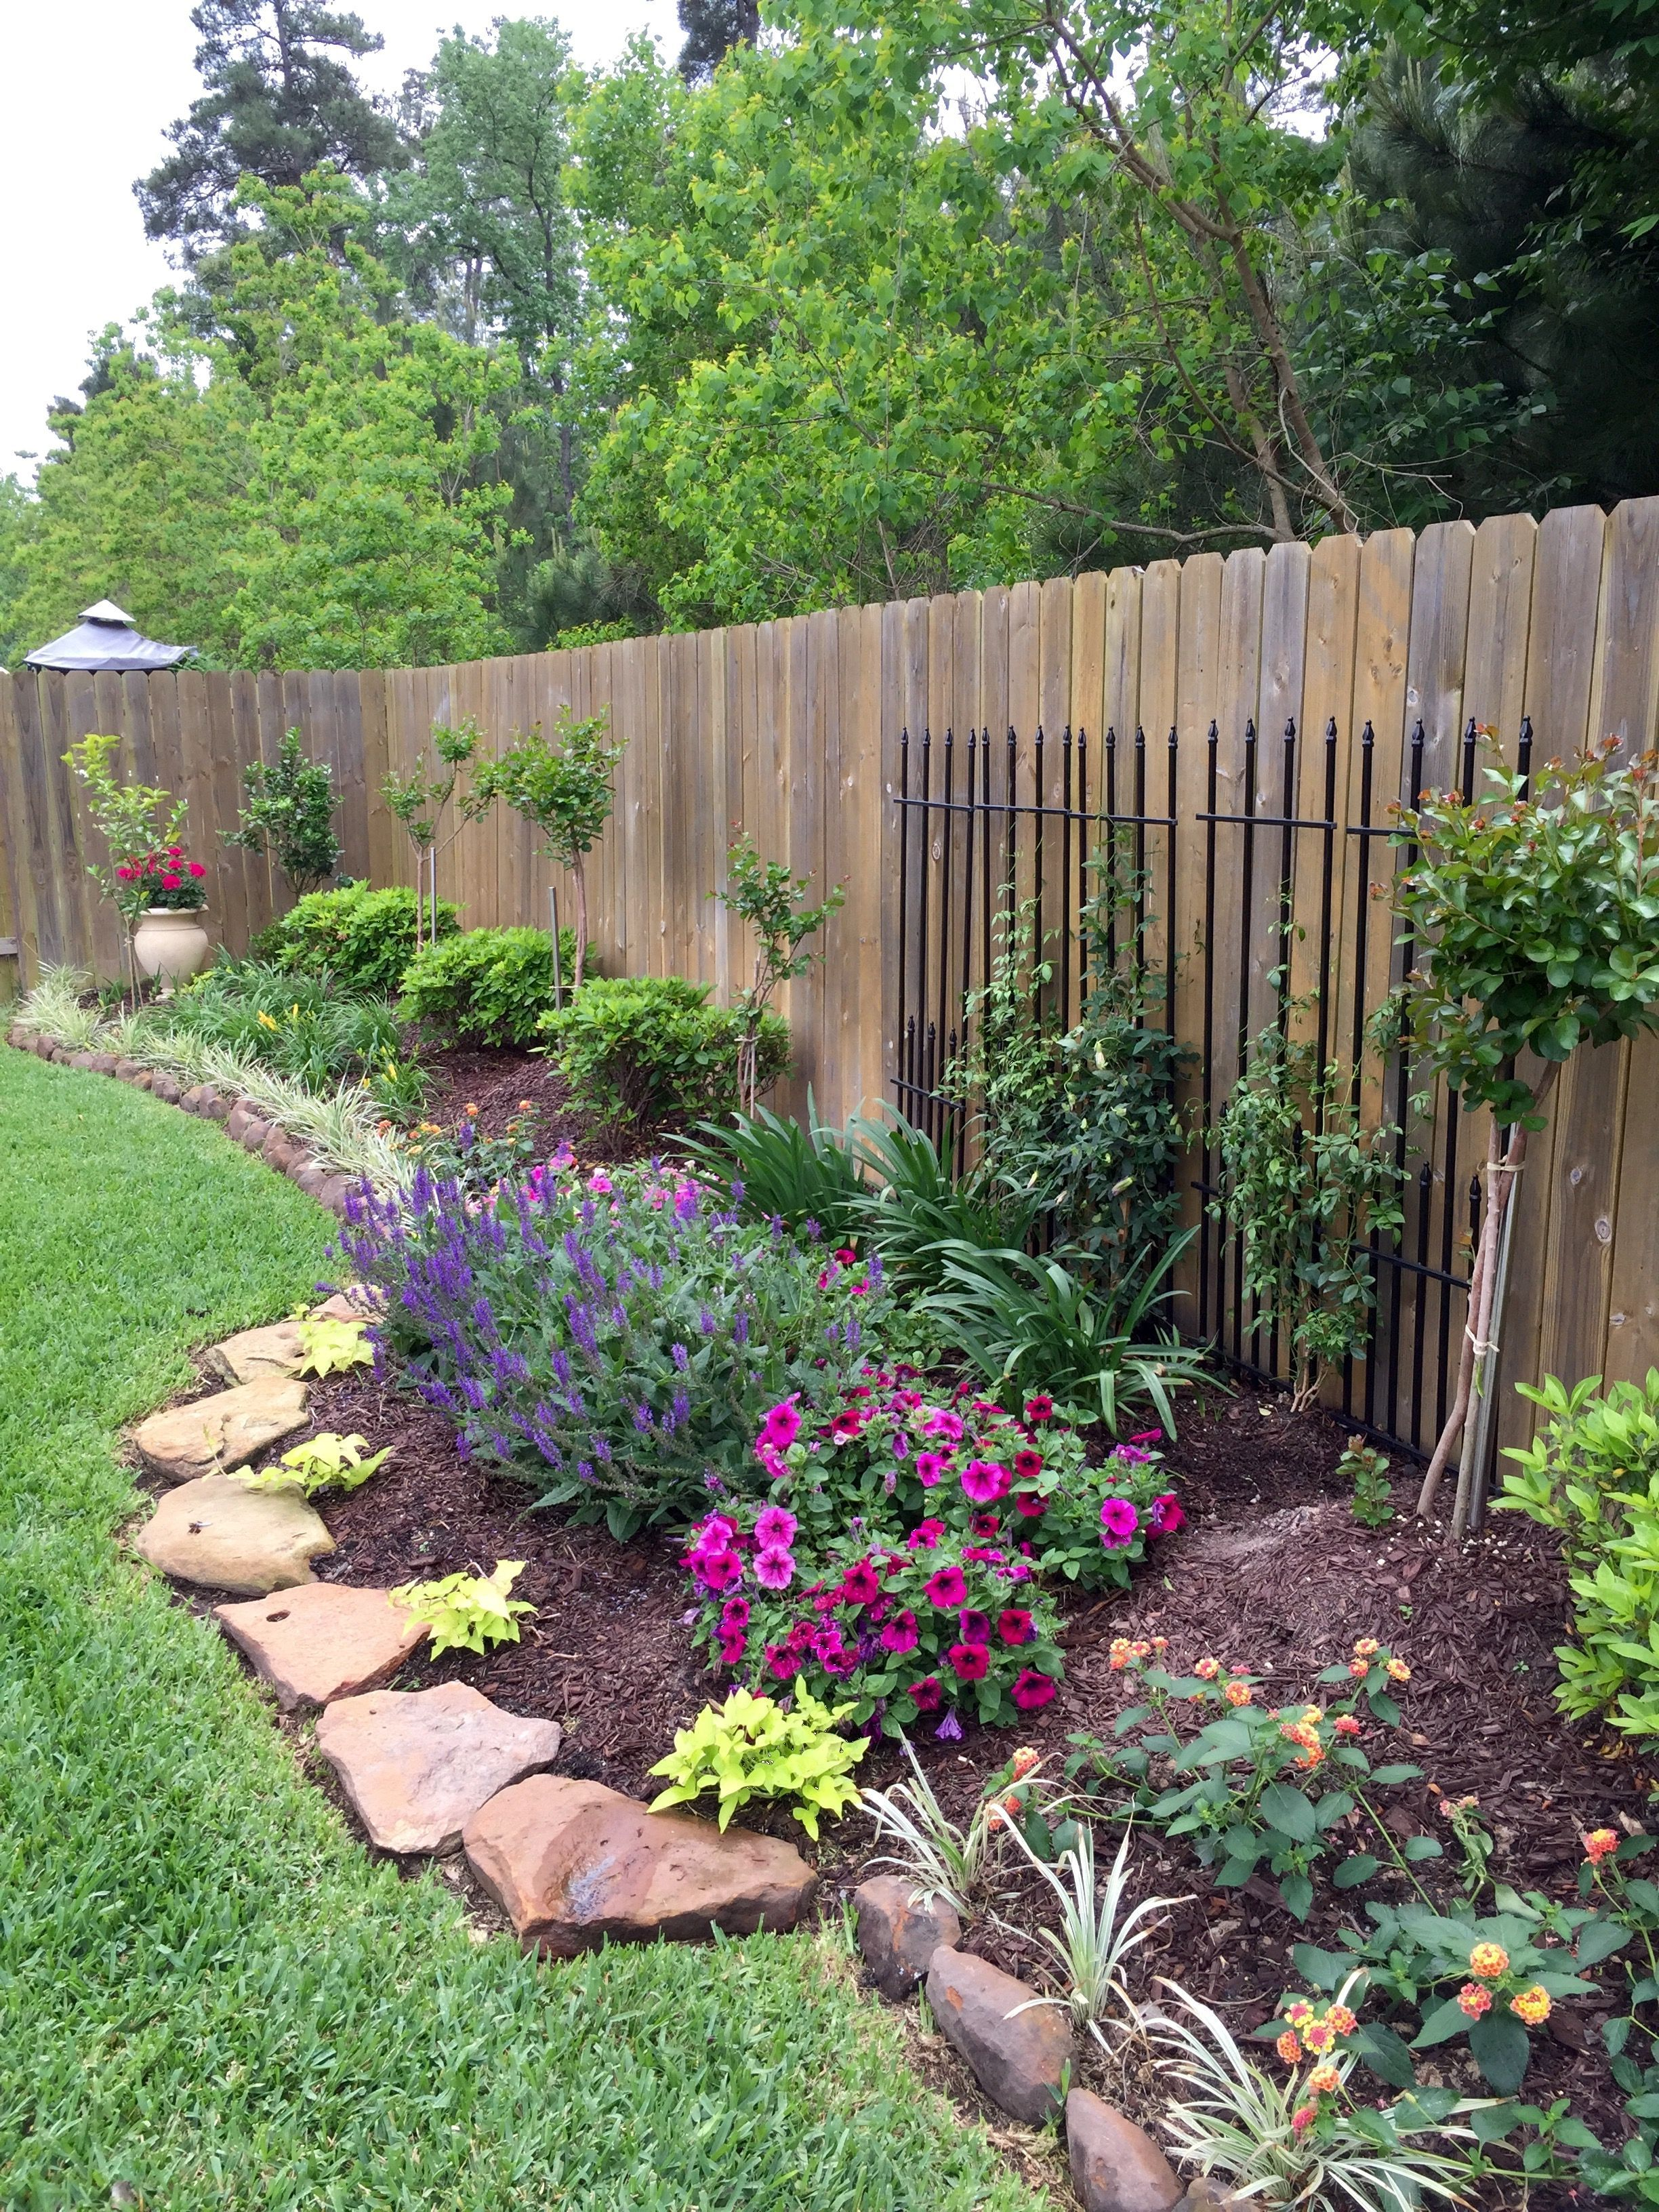 This is a nice way to use black fencing from an old house against a stockade fence at the neighbors side to Improve the look